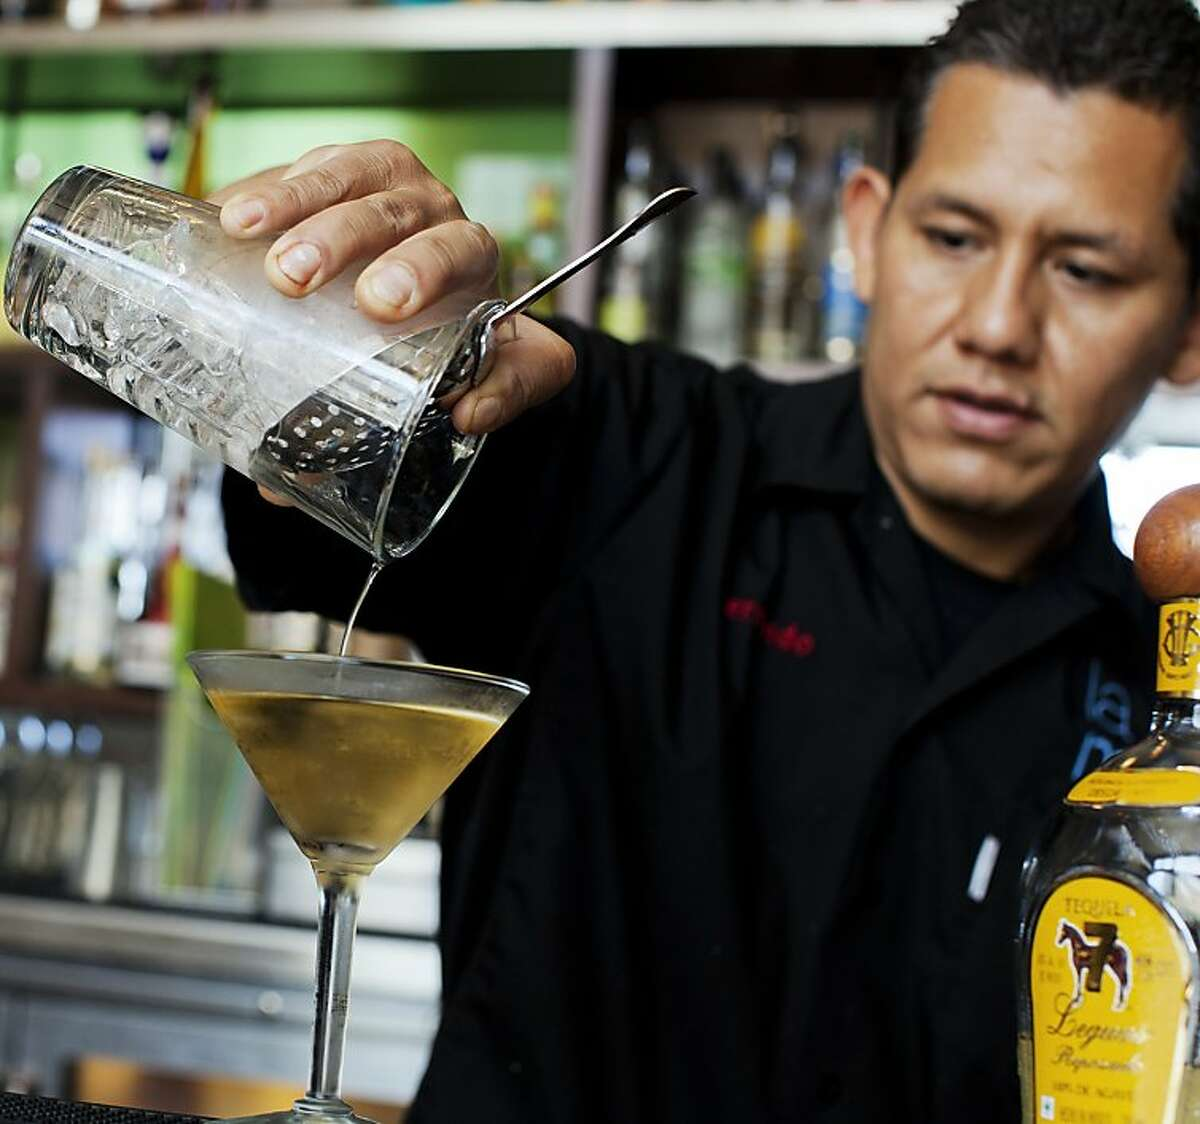 Bartender Fernado Maza pours an El Chalan cocktail at La Mar Cebicheria Peruana.